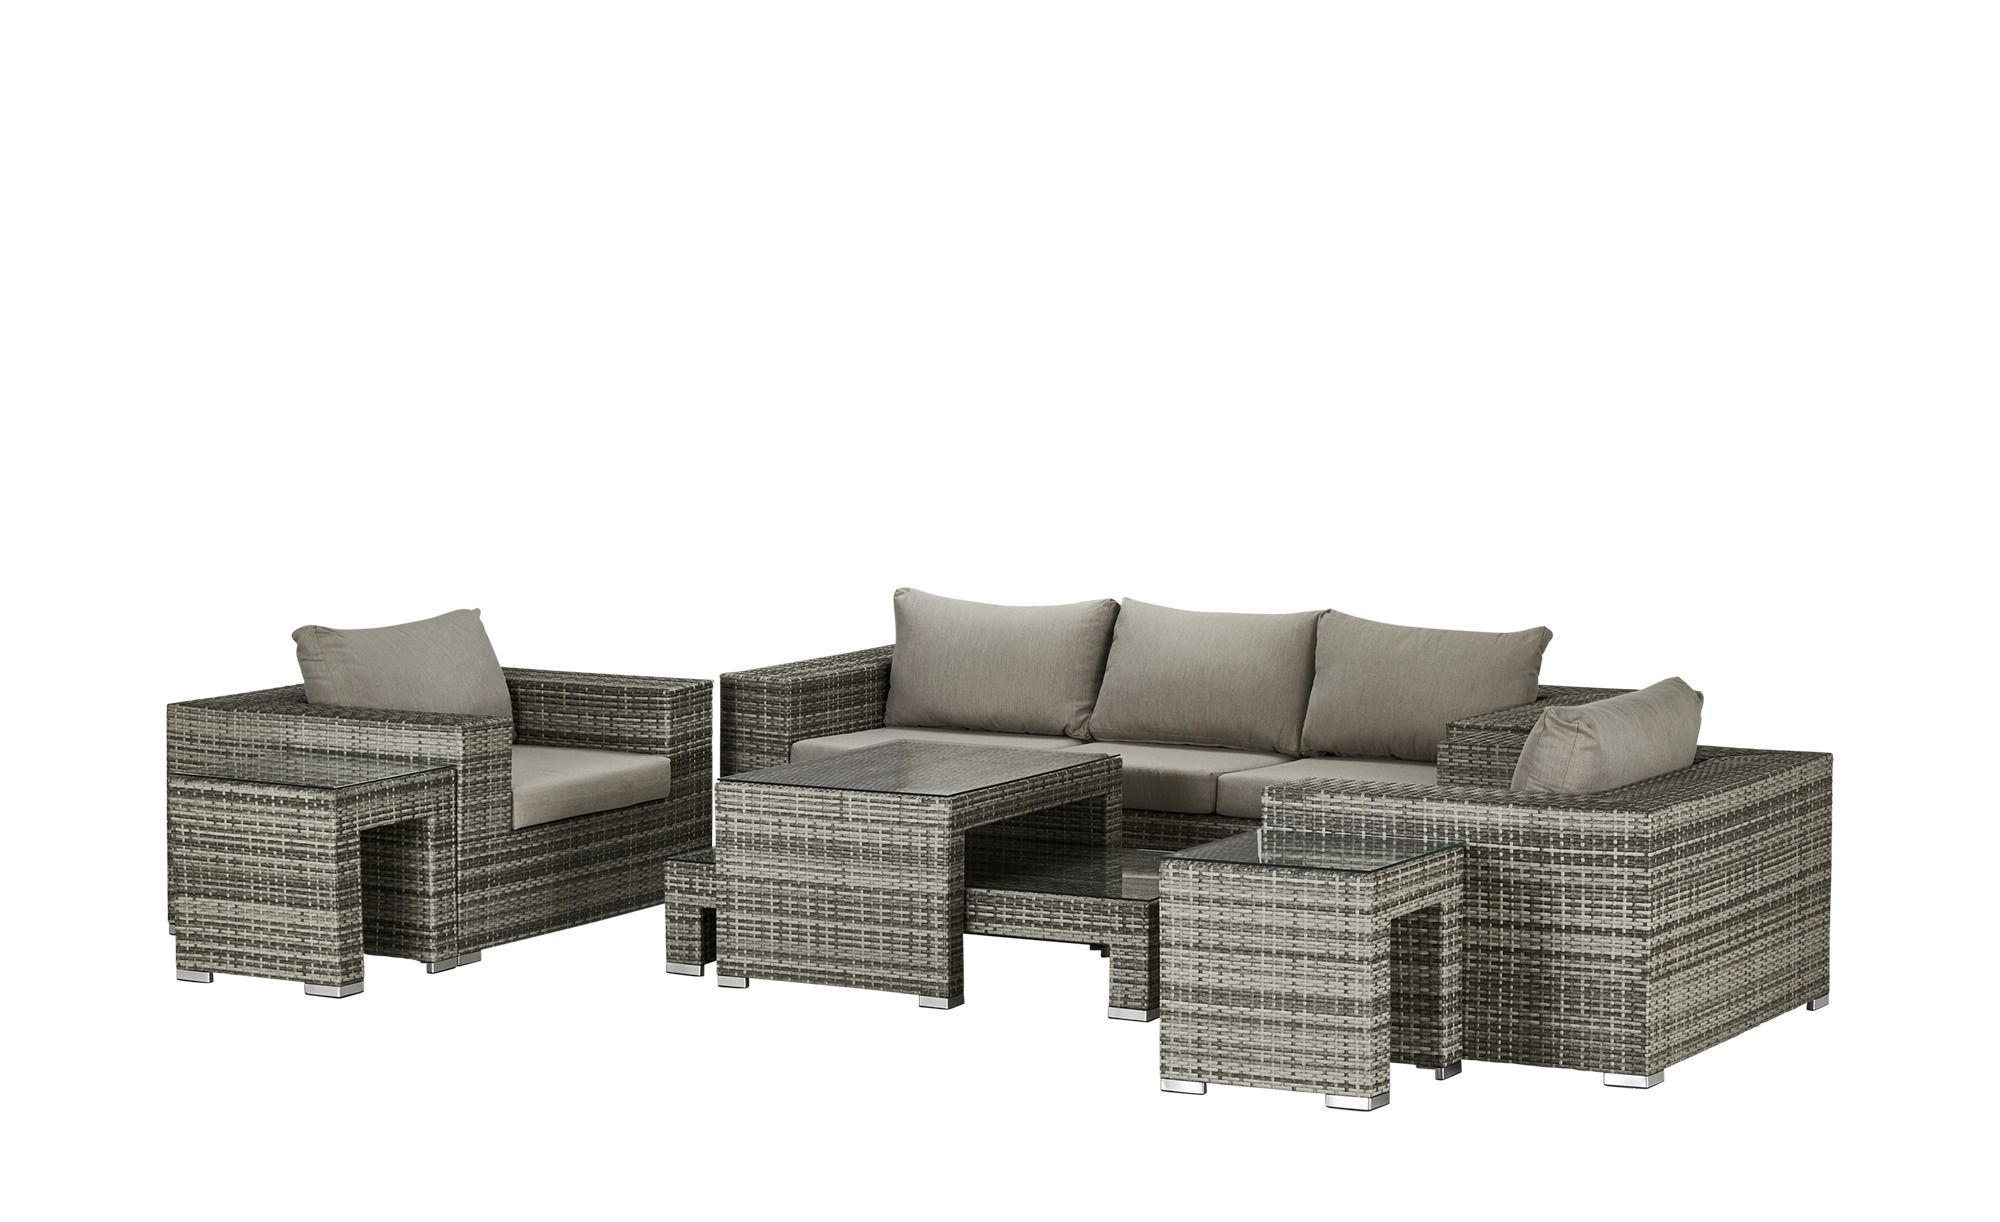 A Casa Mia Geflecht Lounge Milano Grau Stahl Pulverbeschichtet Pe Geflecht Garten Gartenmobel Nach Materi Outdoor Furniture Sets Furniture Sets Home Decor